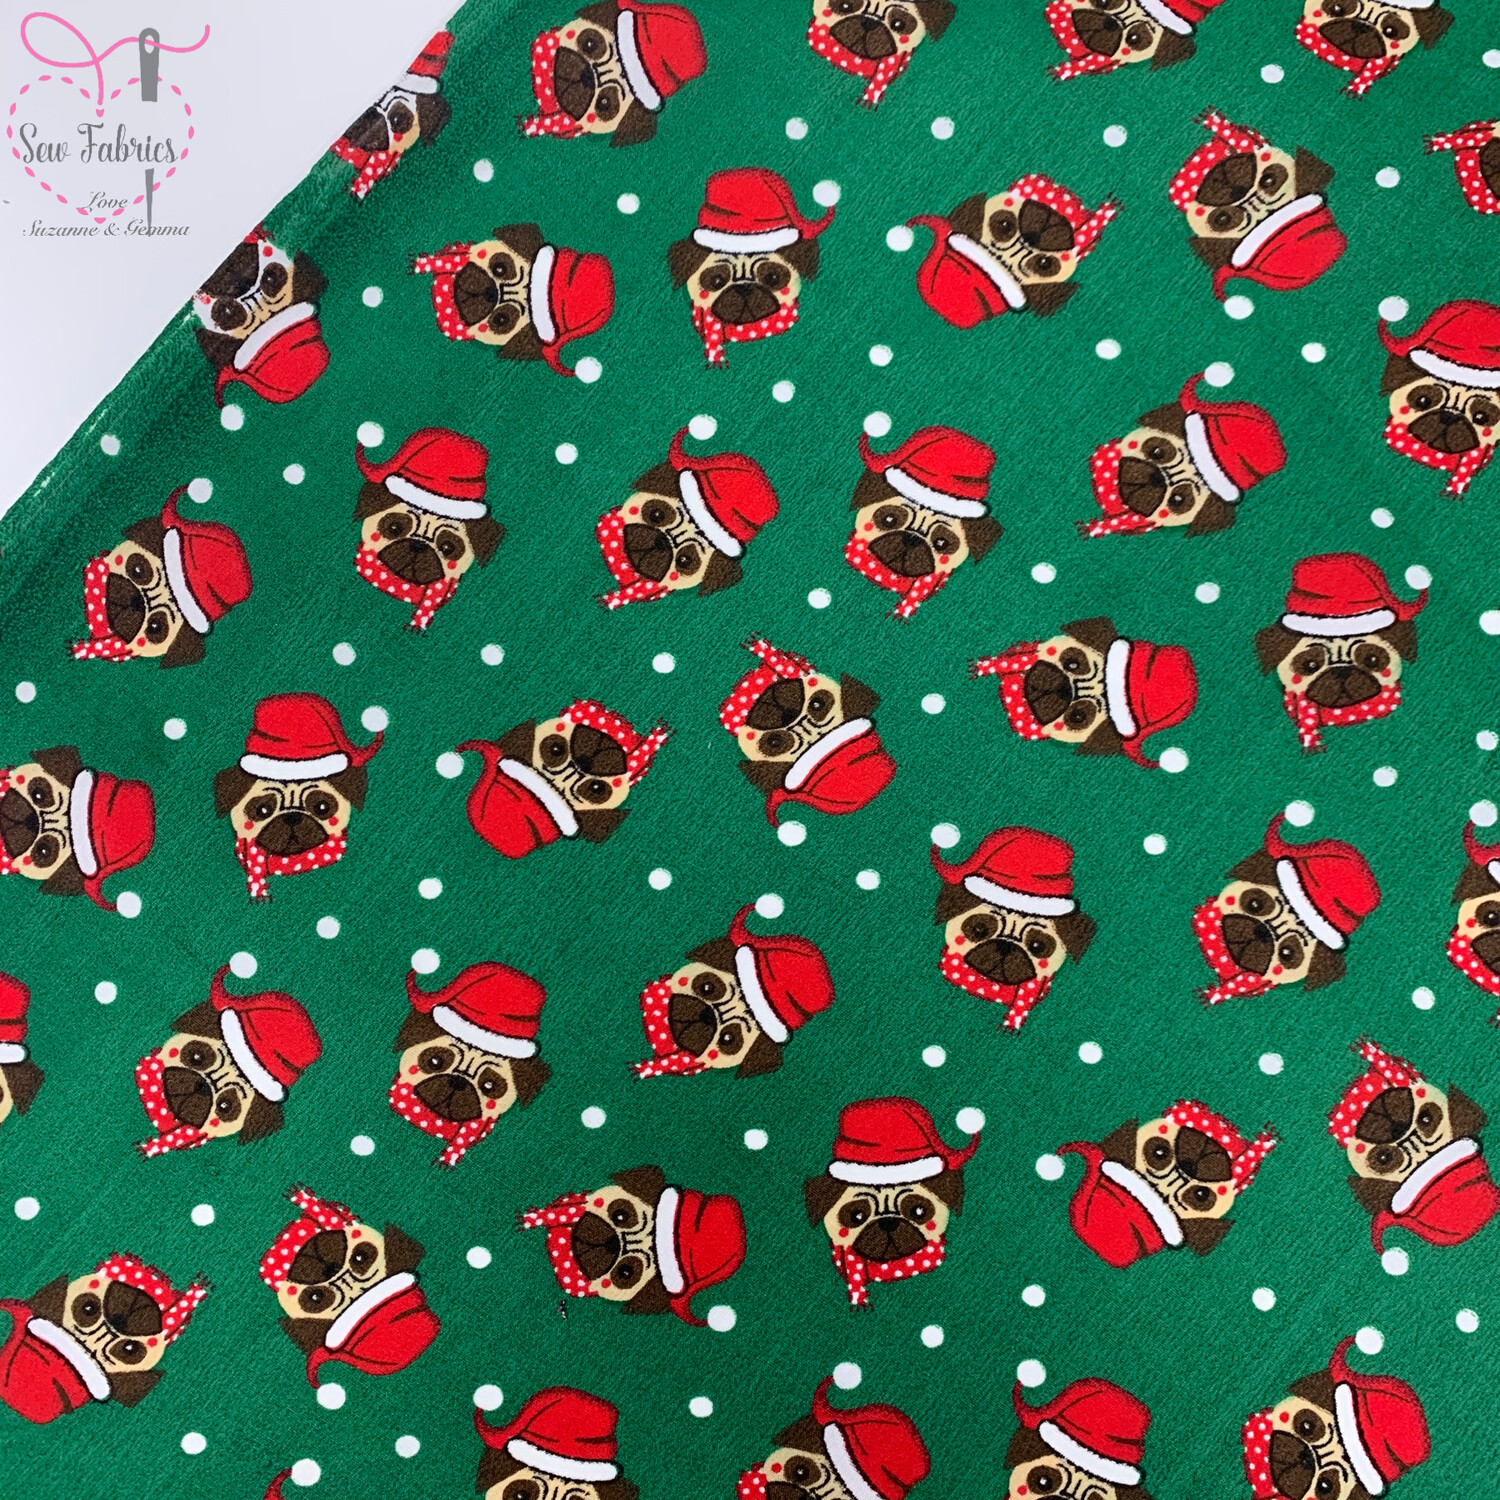 Emerald Green Santa Hat Pug Christmas Theme Printed Polycotton Fabric Xmas, Festive Material